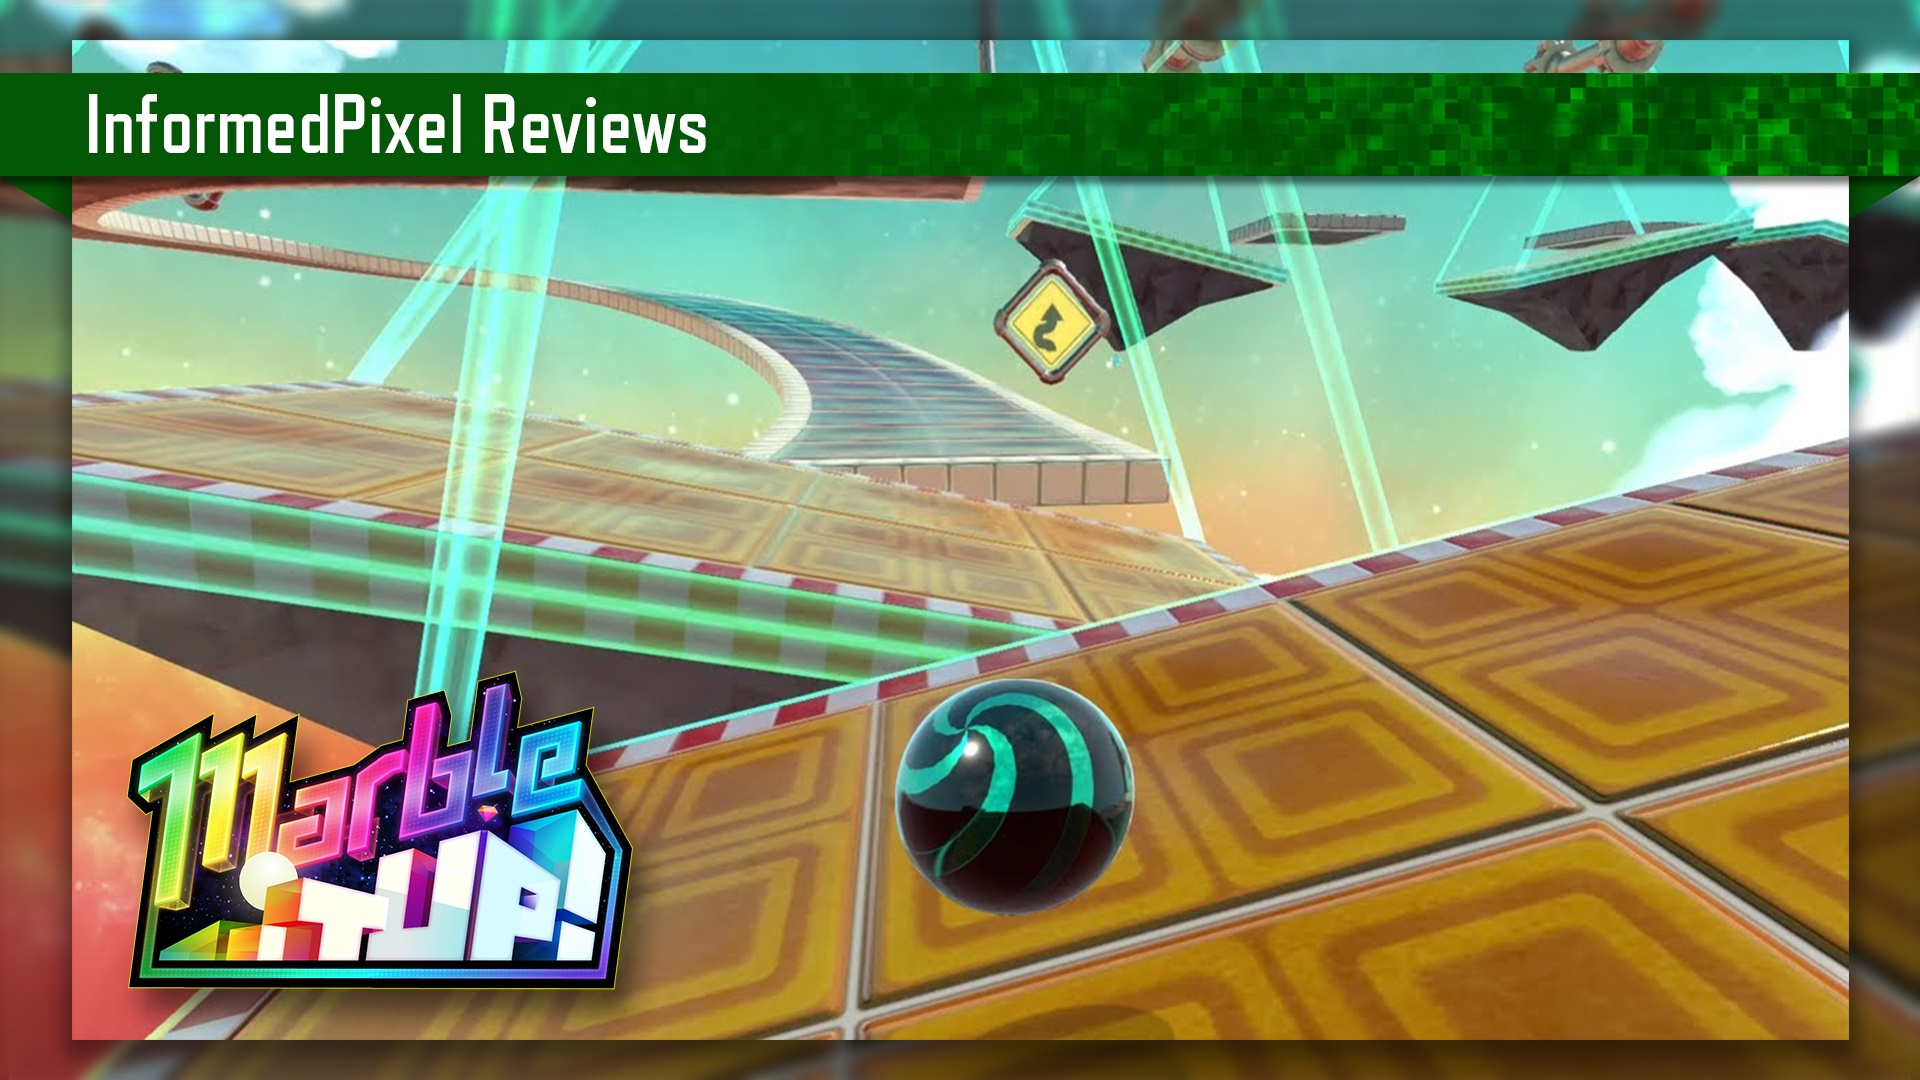 Review: Marble It Up!